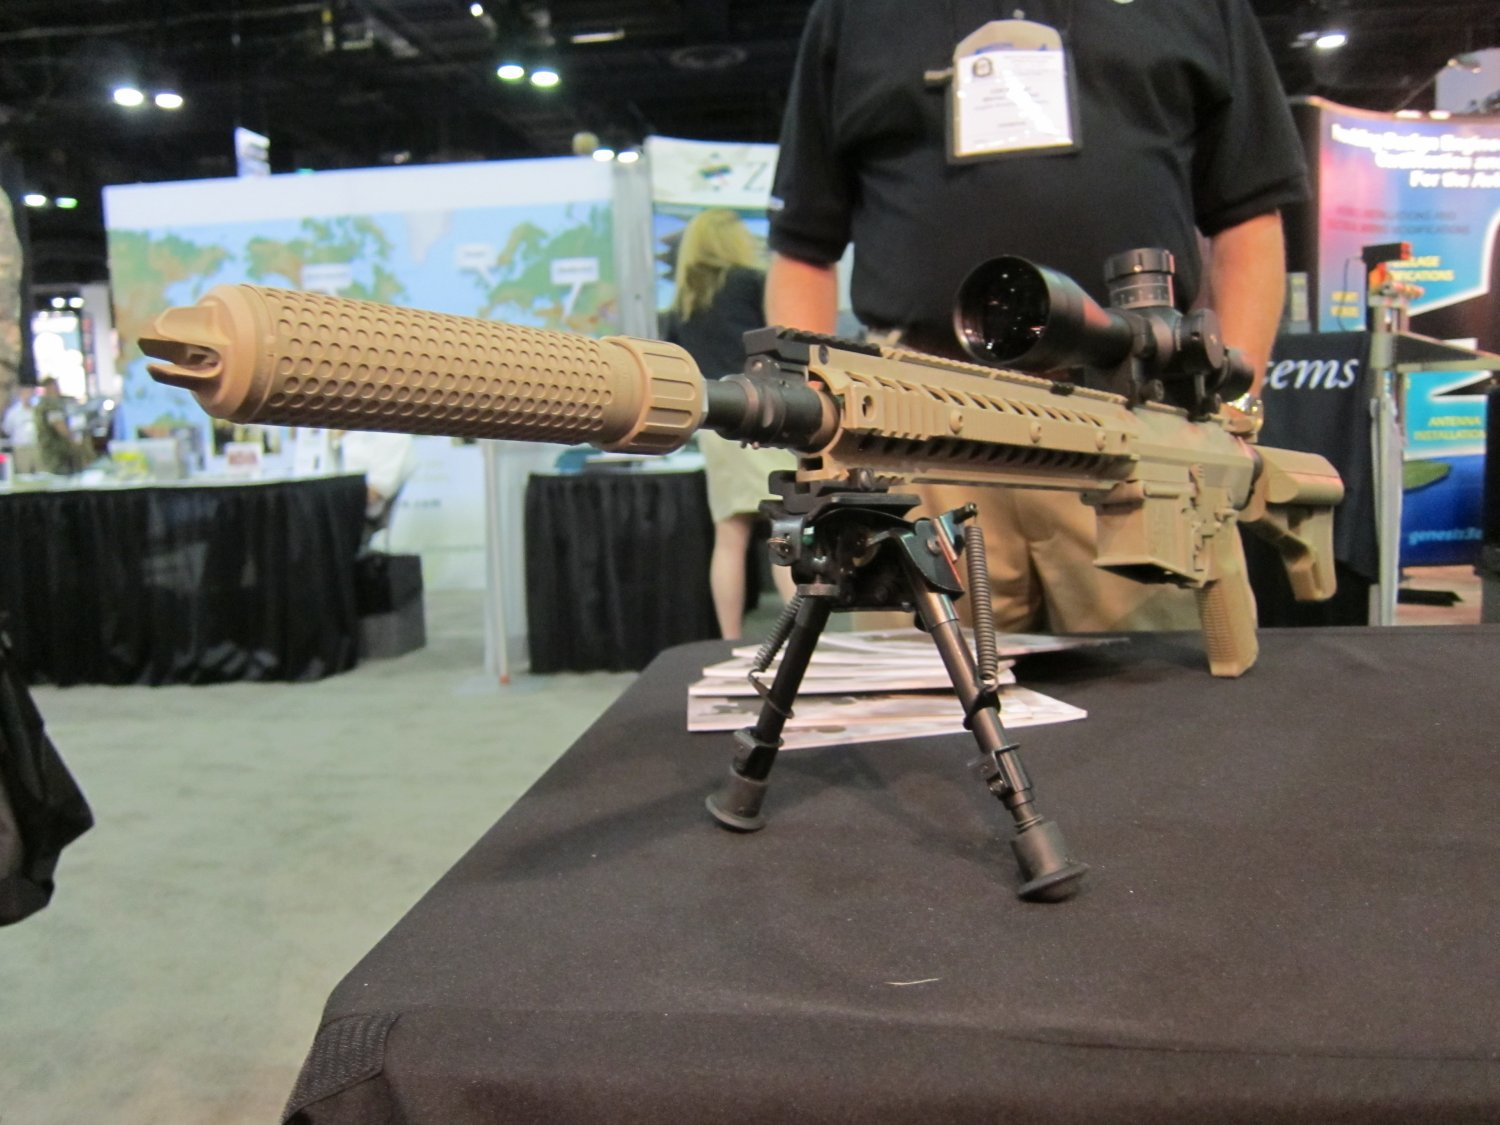 KAC_762_QDC_and_KAC_762_CQB_Muzzle_Cans_(Silencers_Sound_Suppressors)_SOFIC_2011_DefenseReview.com_(DR)_4